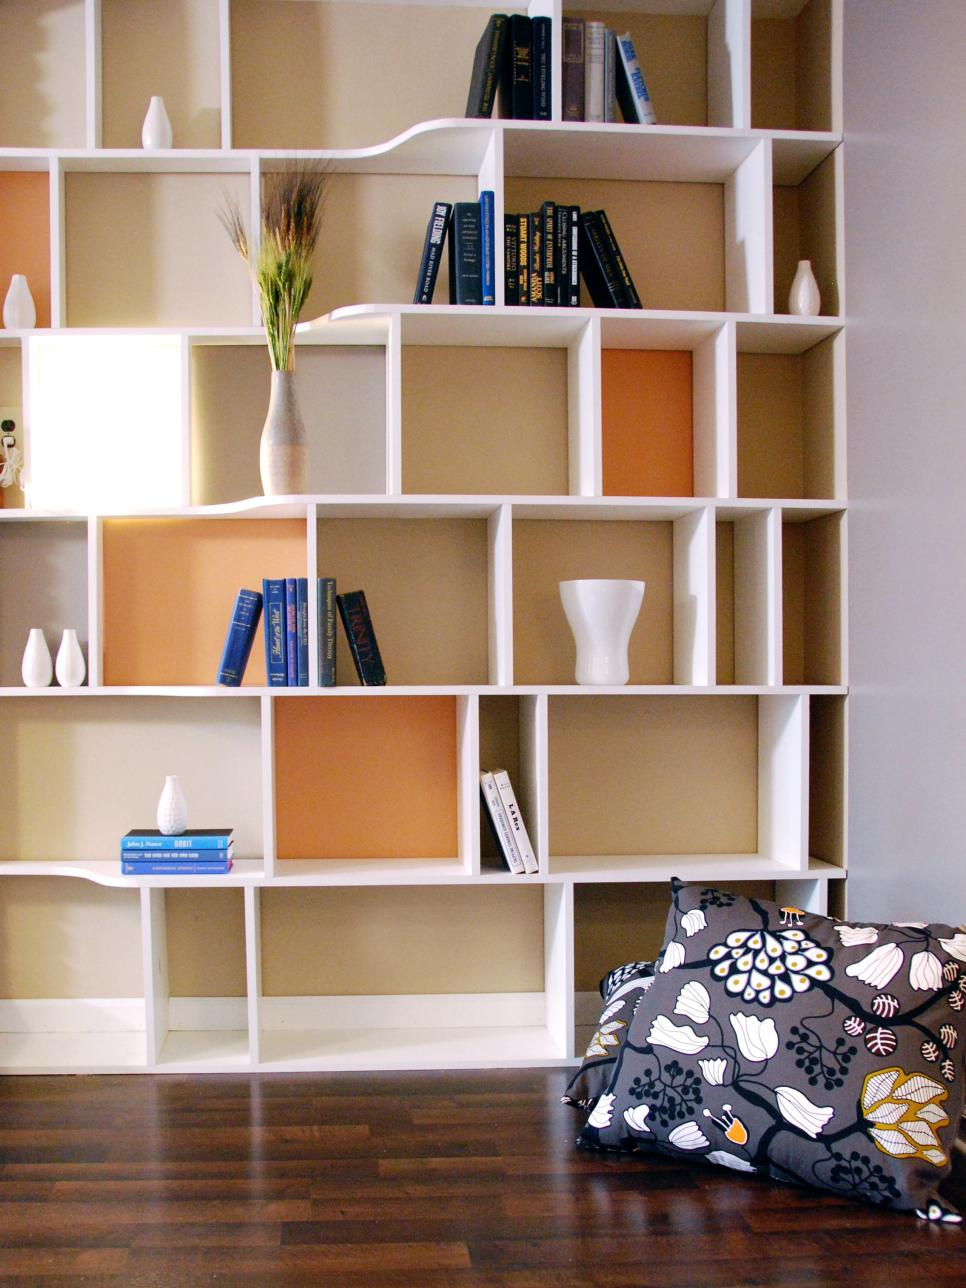 Shelf Designs Functional And Stylish Walltowall Shelves  Hgtv